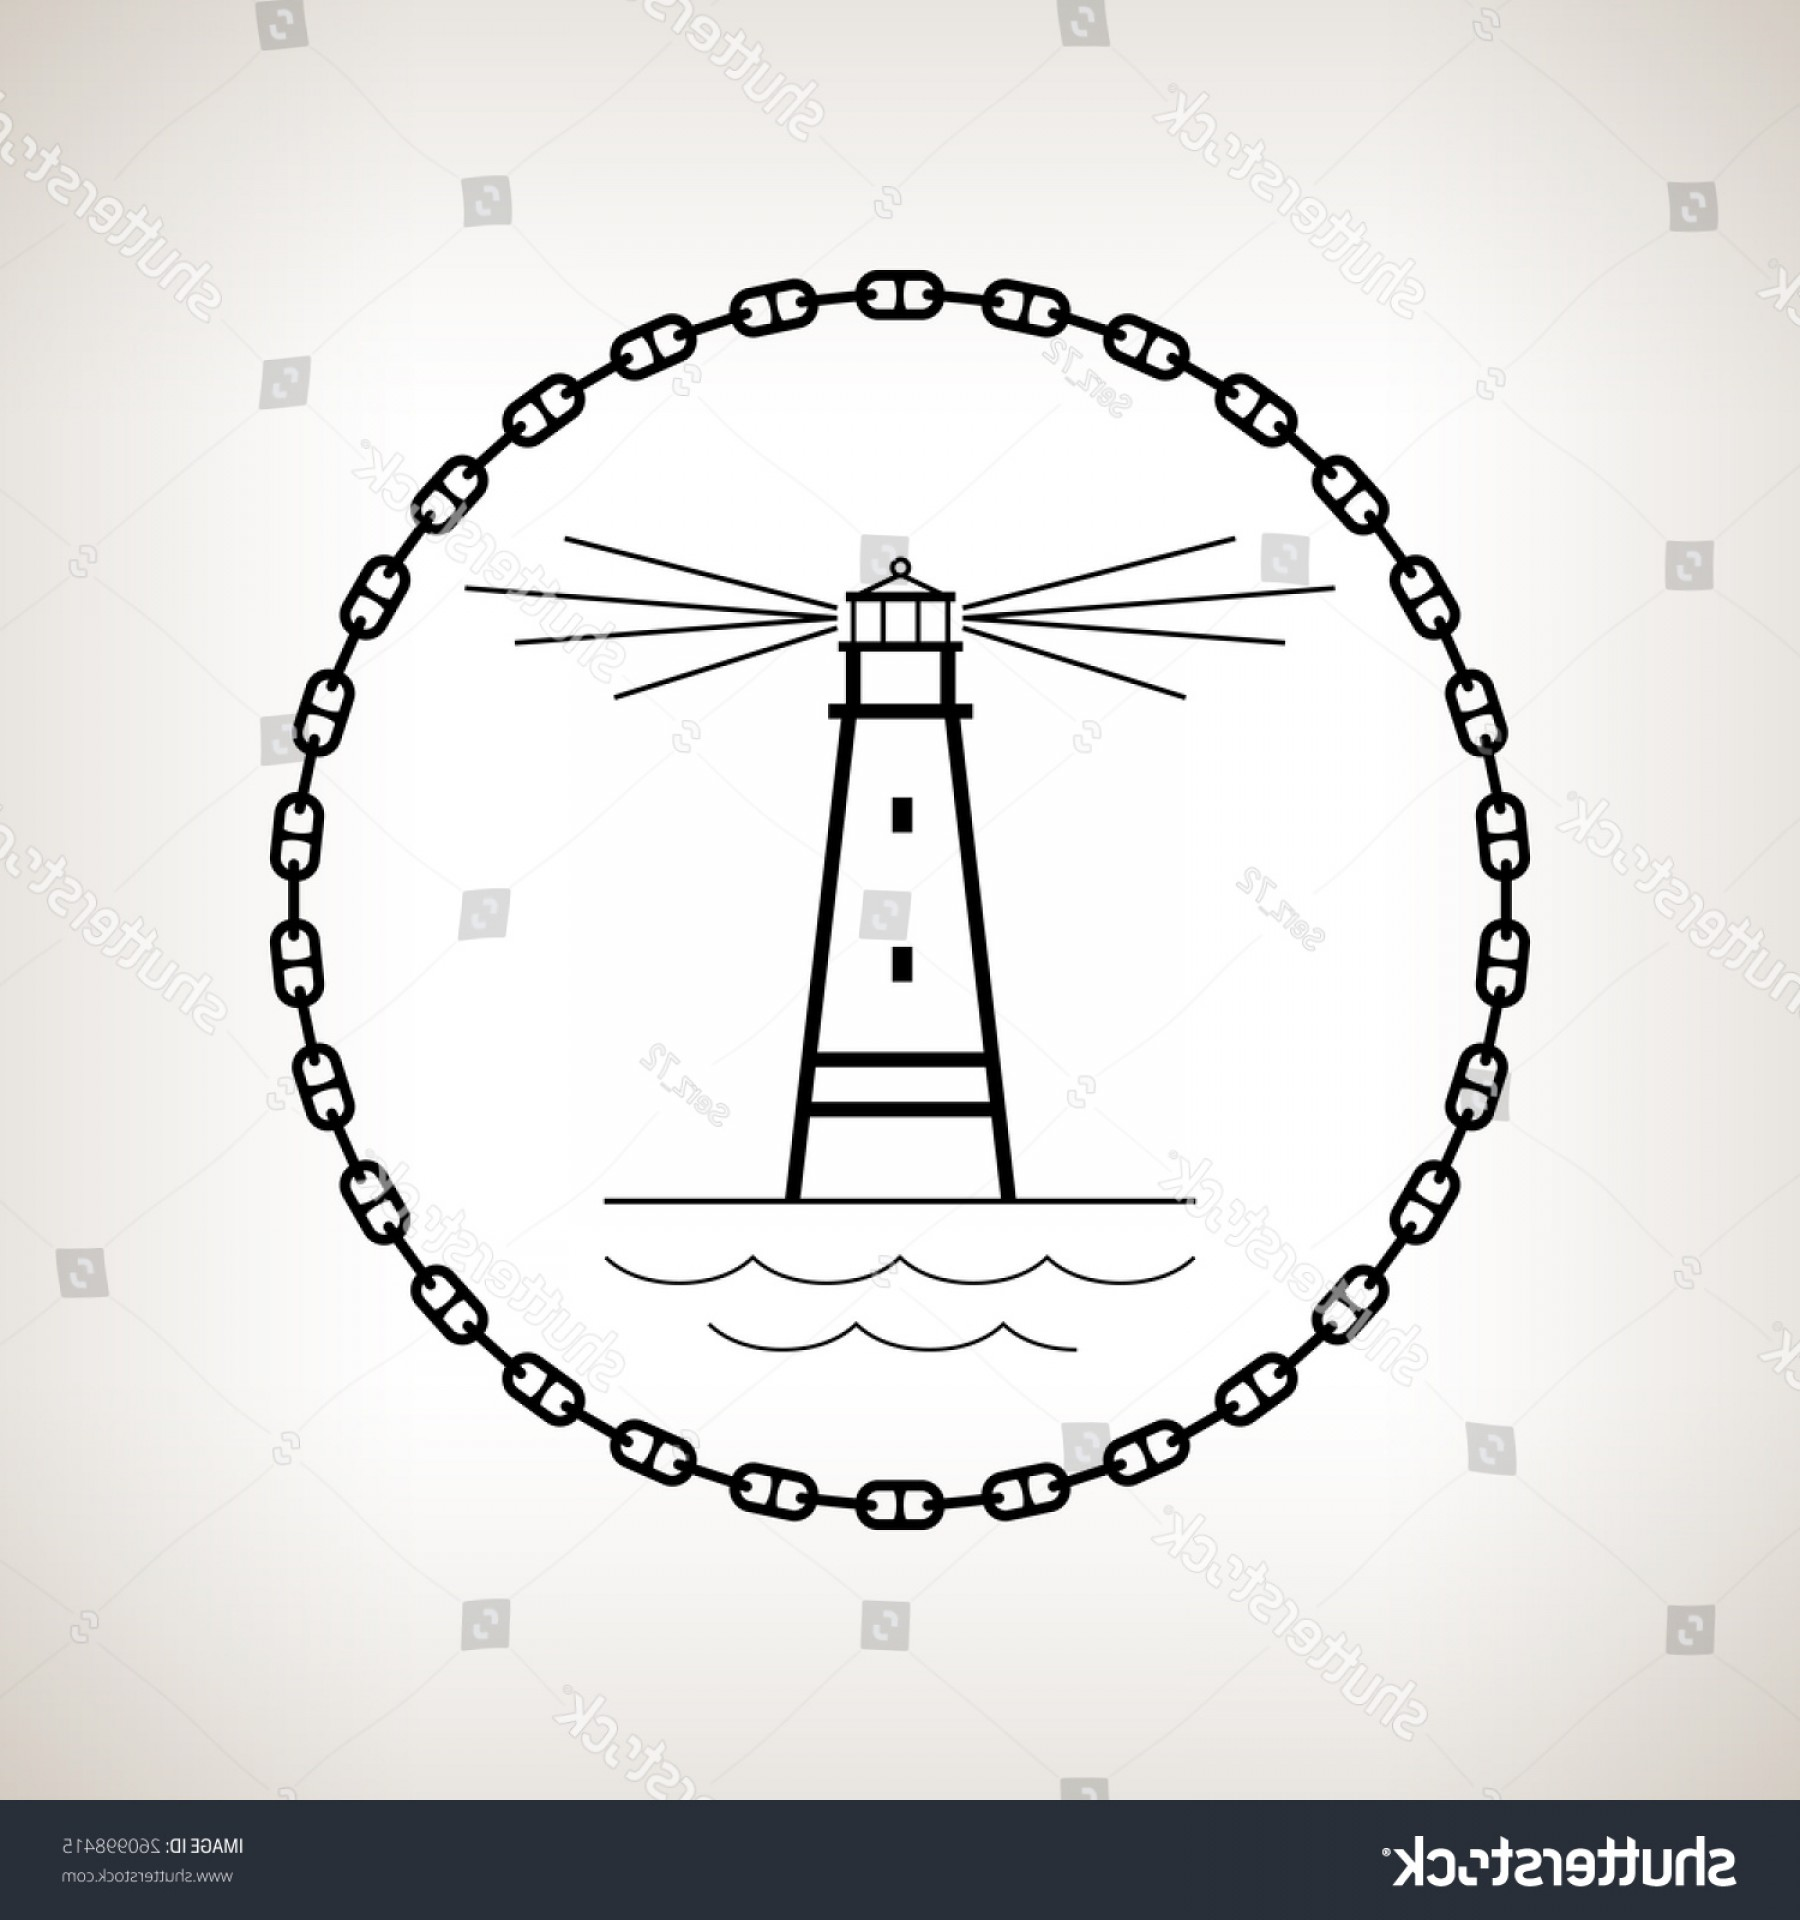 Lighthouse Beacon Silhouette Vector: Silhouette Lighthouse Beacon Circle Chain On